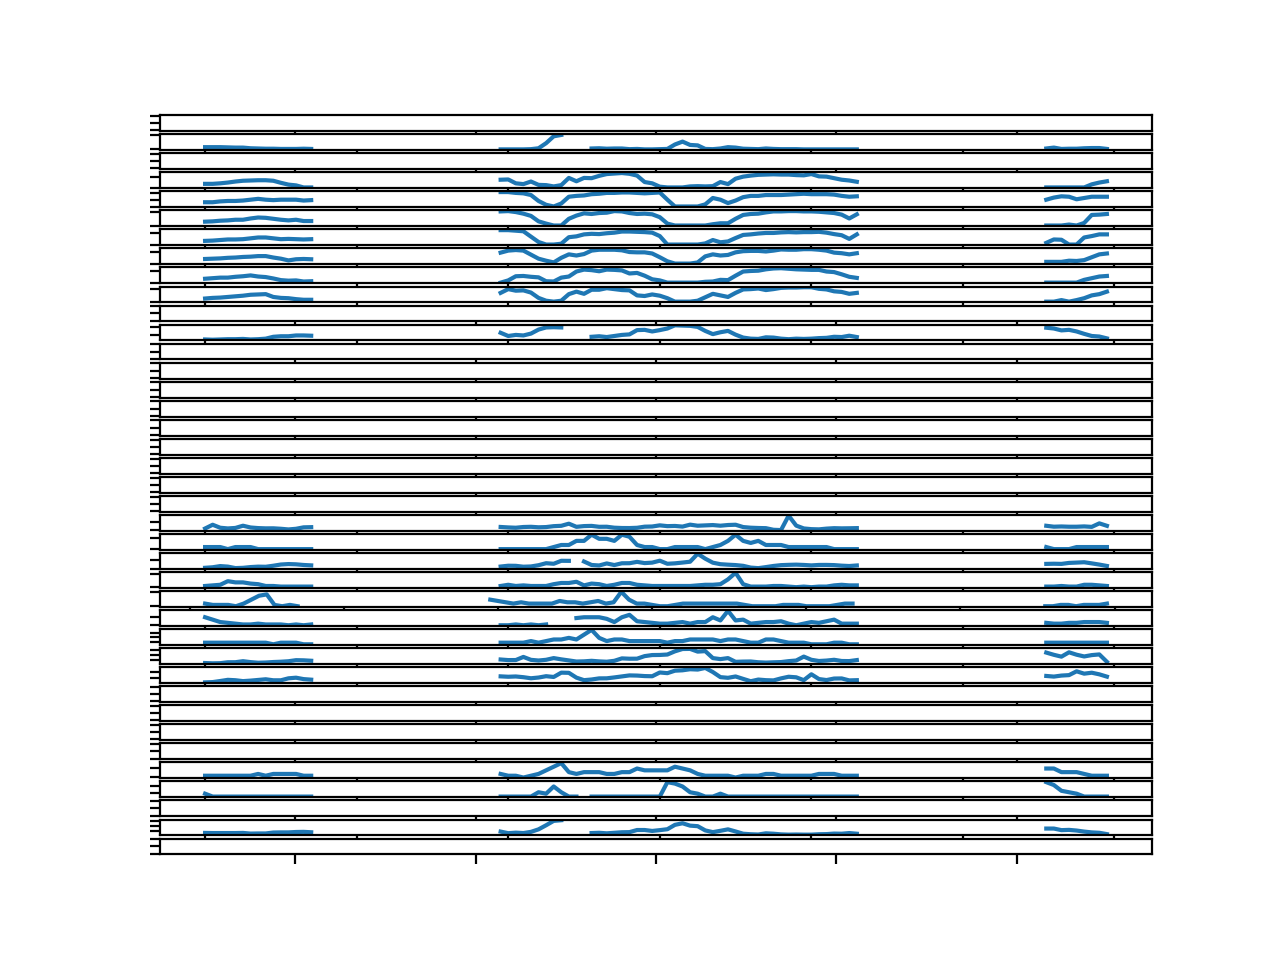 Line Plots for All Targets in Chunk 4 With Missing Values Marked